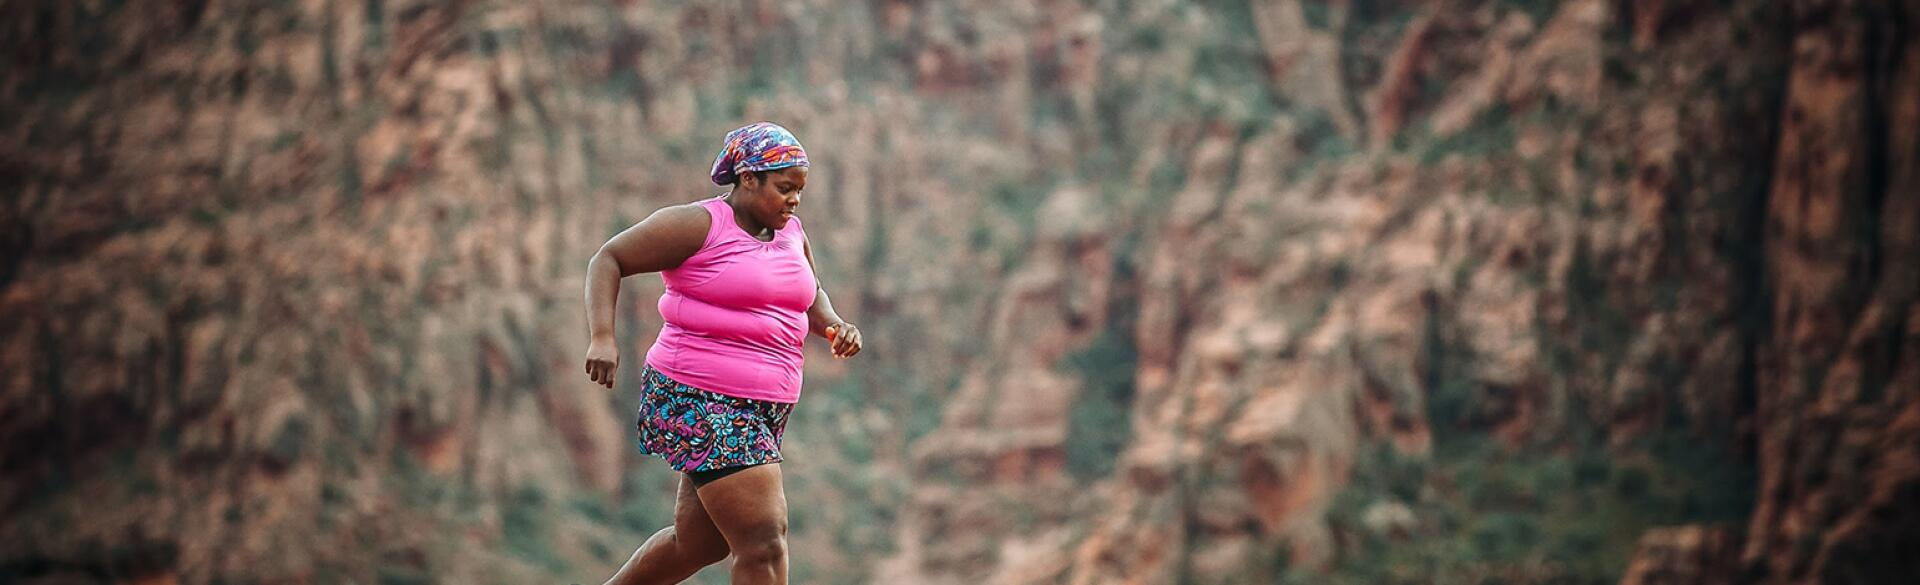 Plus size middle age woman running a marathon